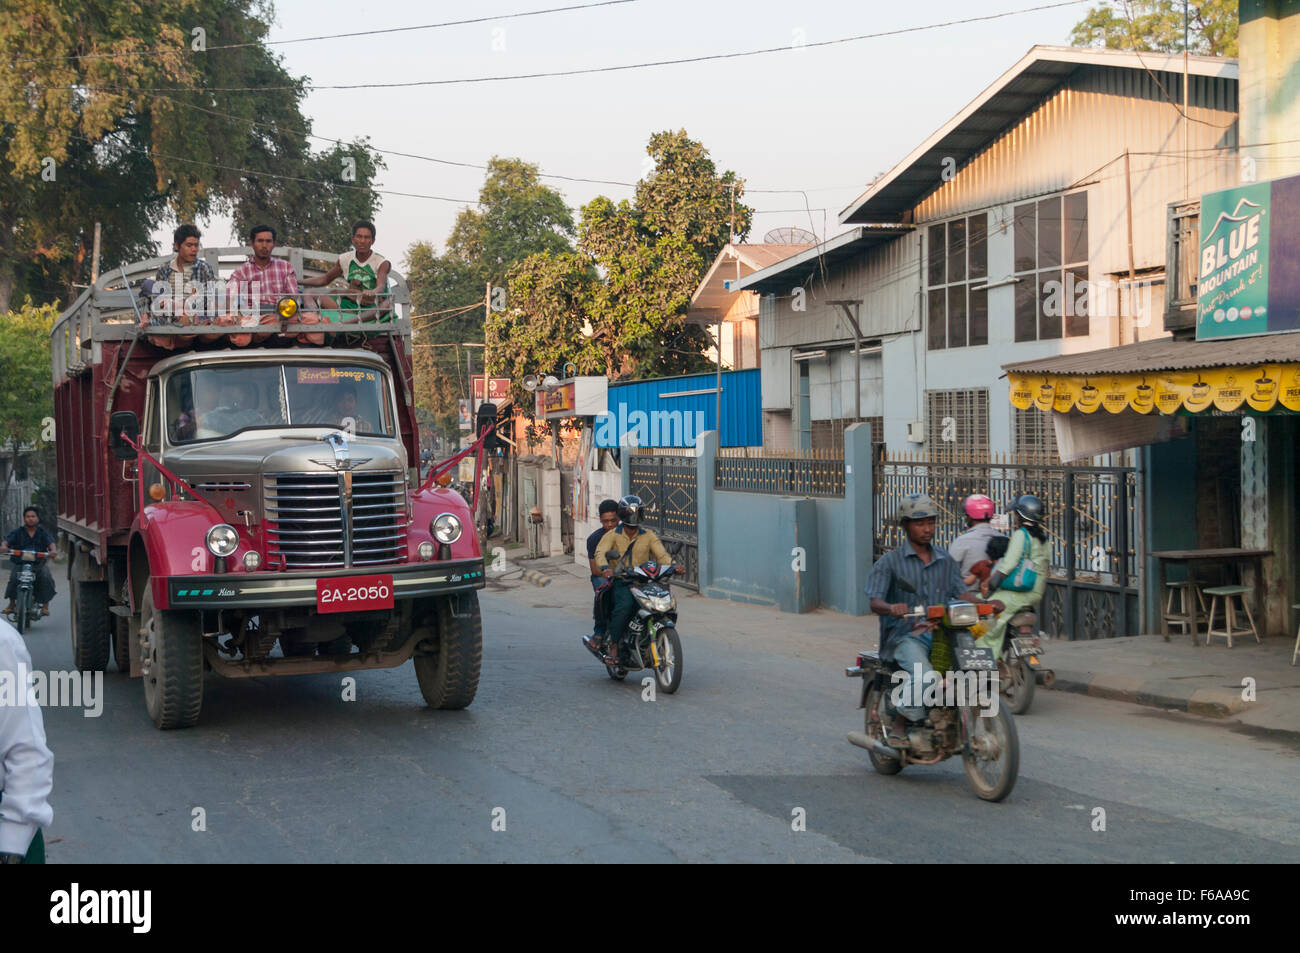 Busy street in Amarapura, Myanmar. Main subject is a truck with people sitting on top. - Stock Image